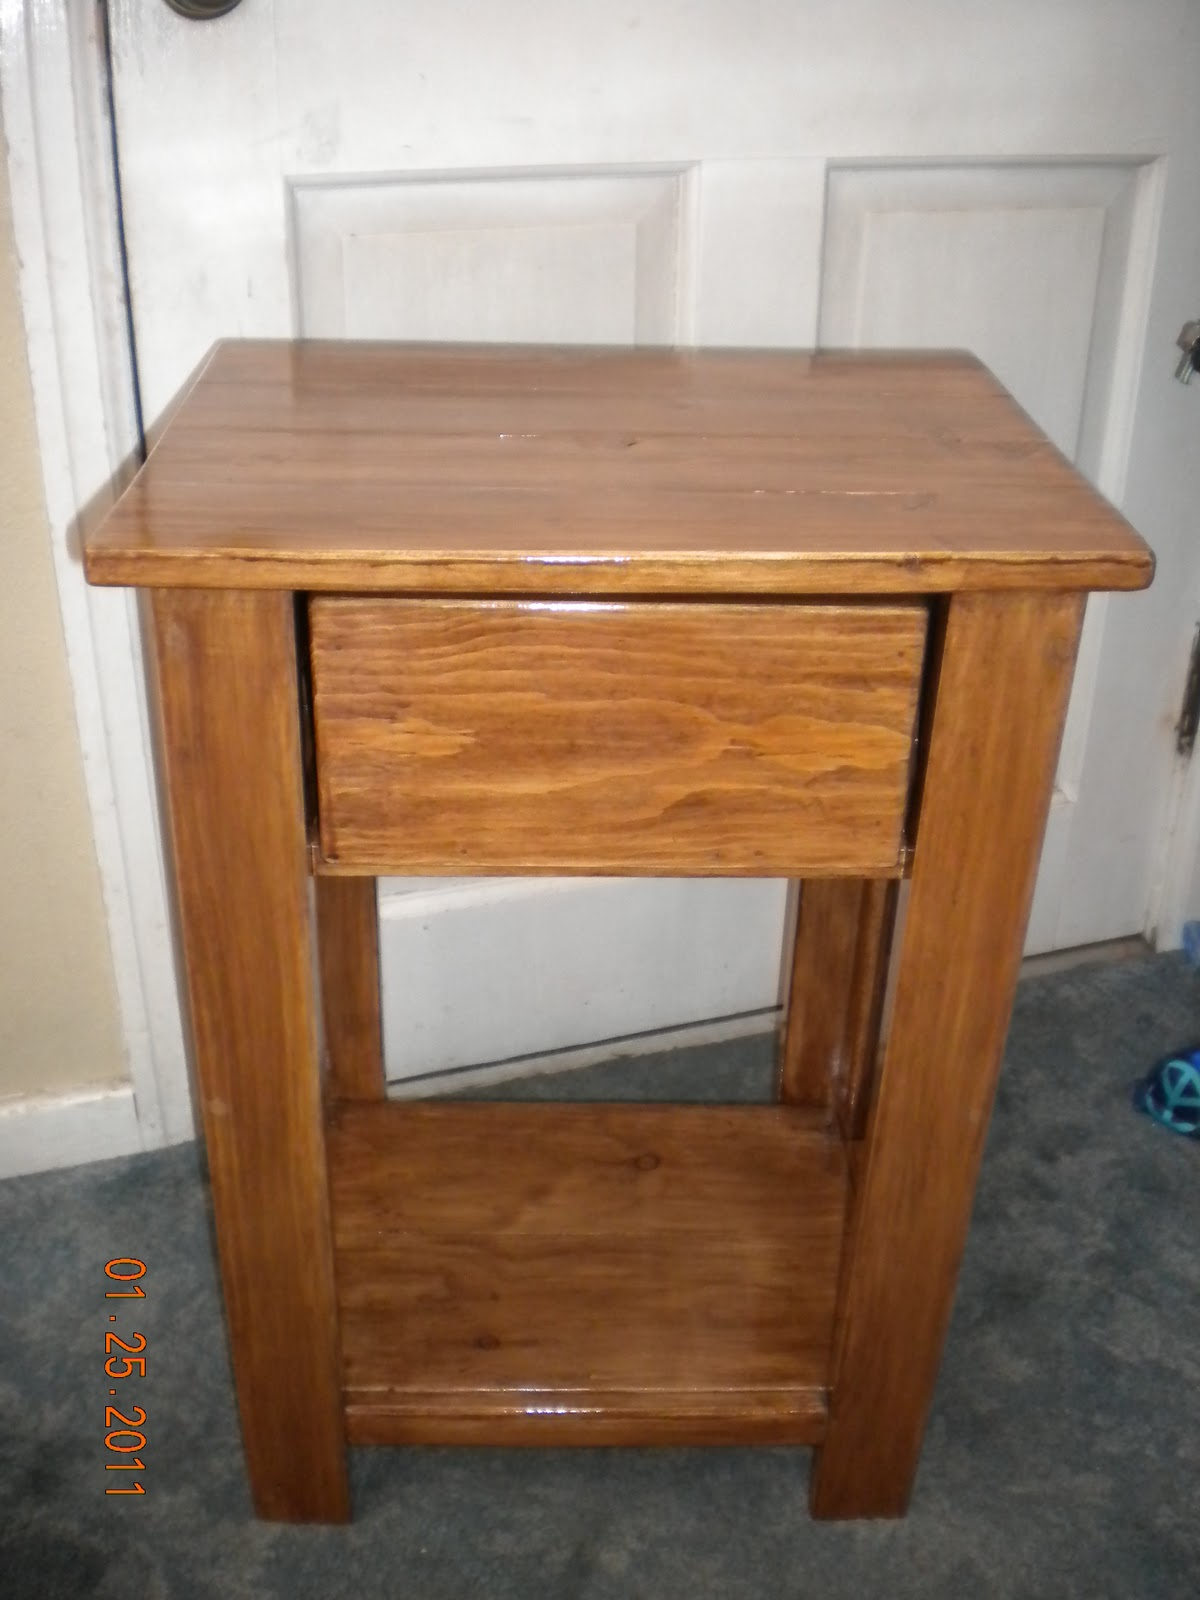 Sheila 39 s furniture and crafts simple night stand for Nightstand plans